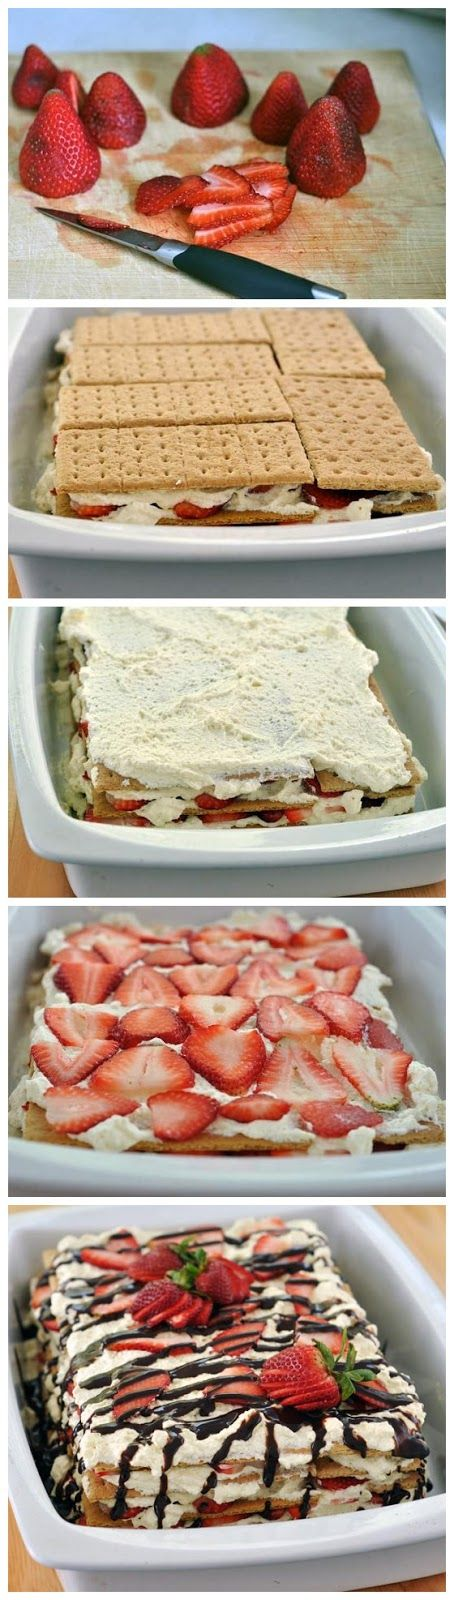 No-Bake Strawberry Icebox Cake